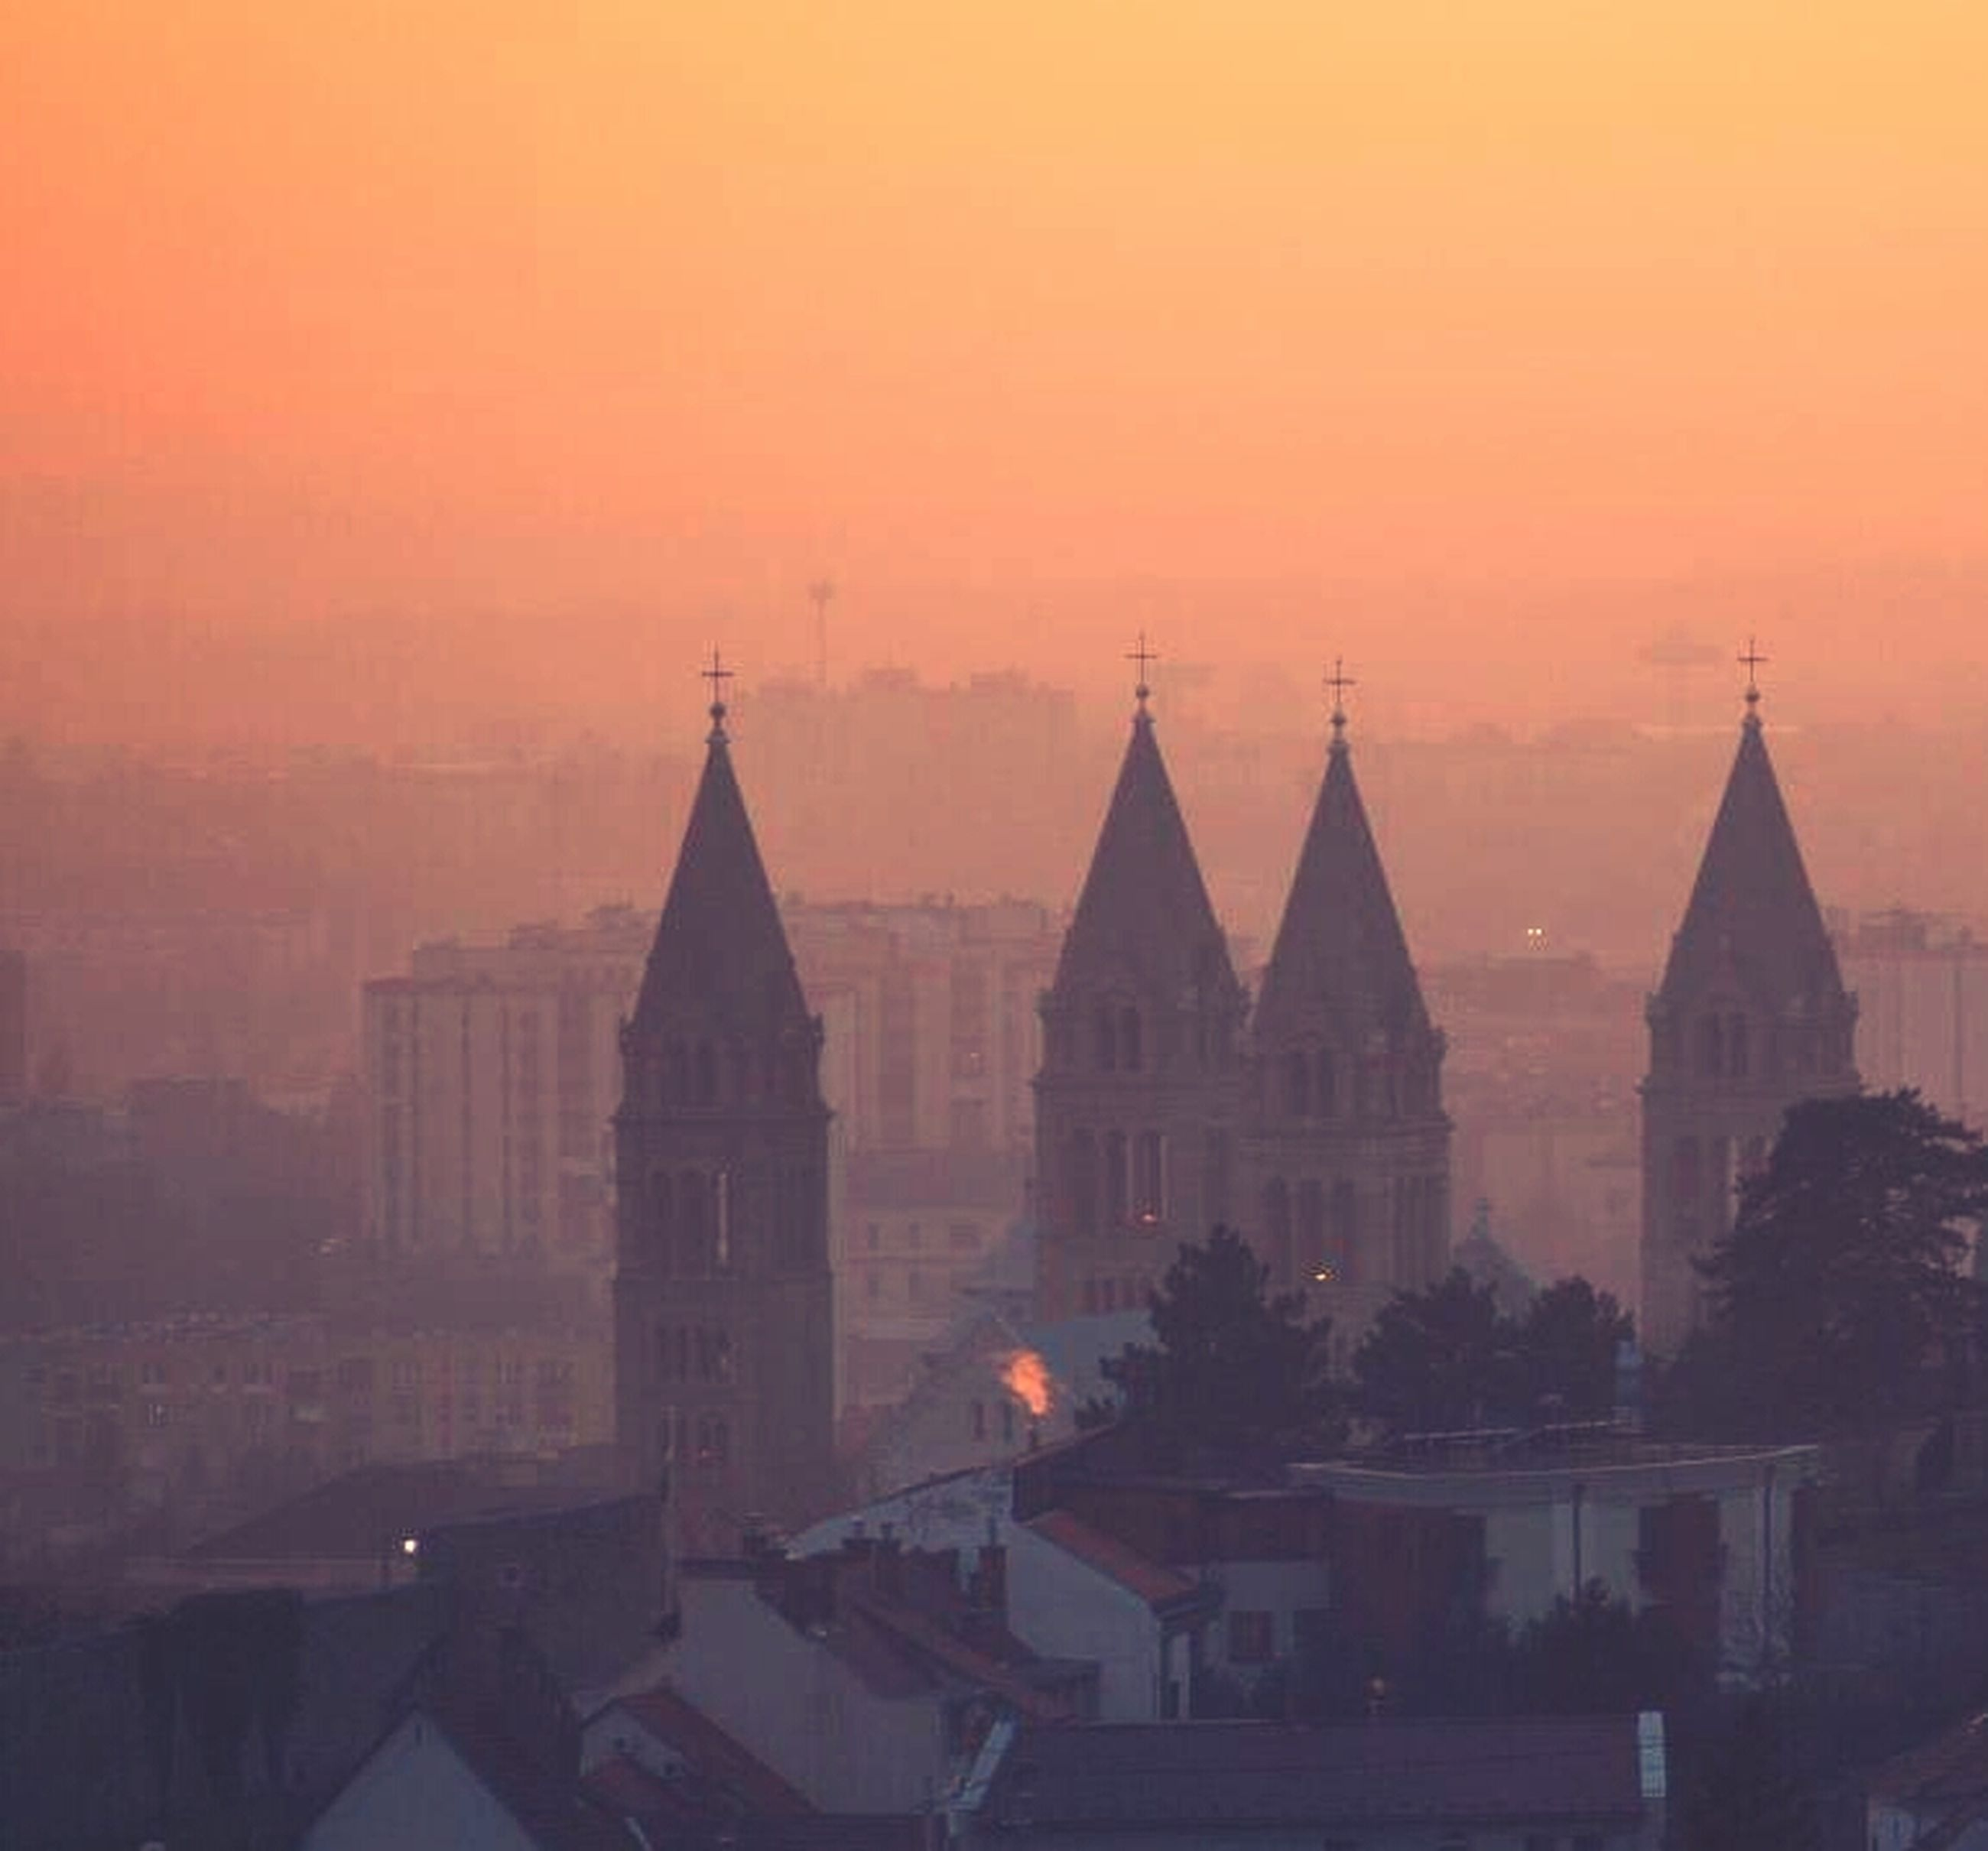 architecture, sunset, building exterior, built structure, orange color, place of worship, religion, sky, church, spirituality, silhouette, dome, city, outdoors, dusk, no people, nature, spire